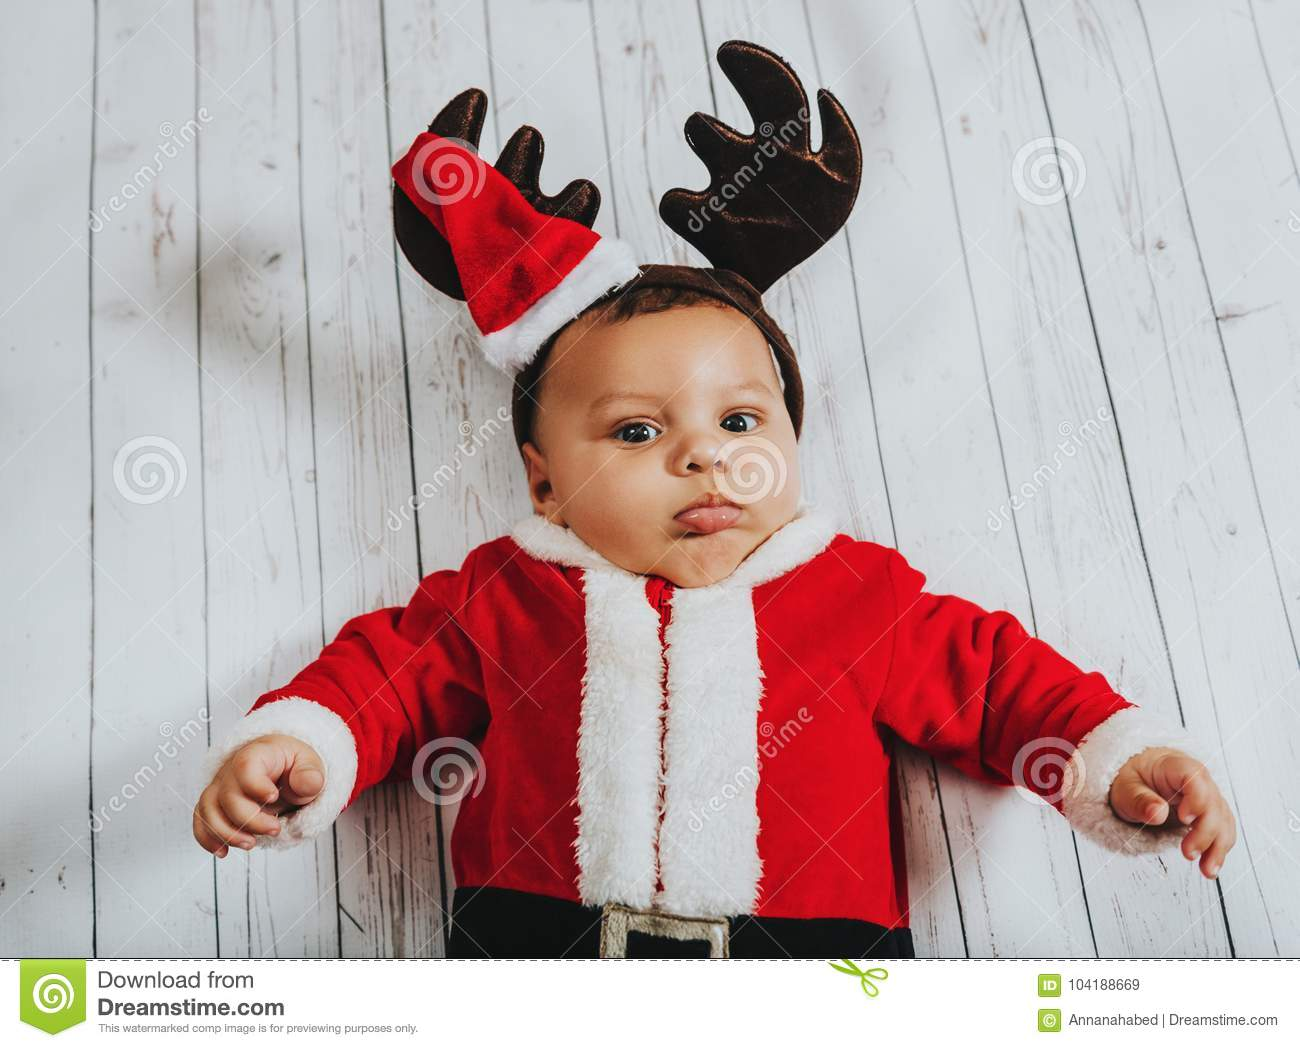 fb9bb2f1afa7 Christmas portrait of adorable baby boy lying on white background, wearing  Santa Claus` outfit and reindeer ears, top view